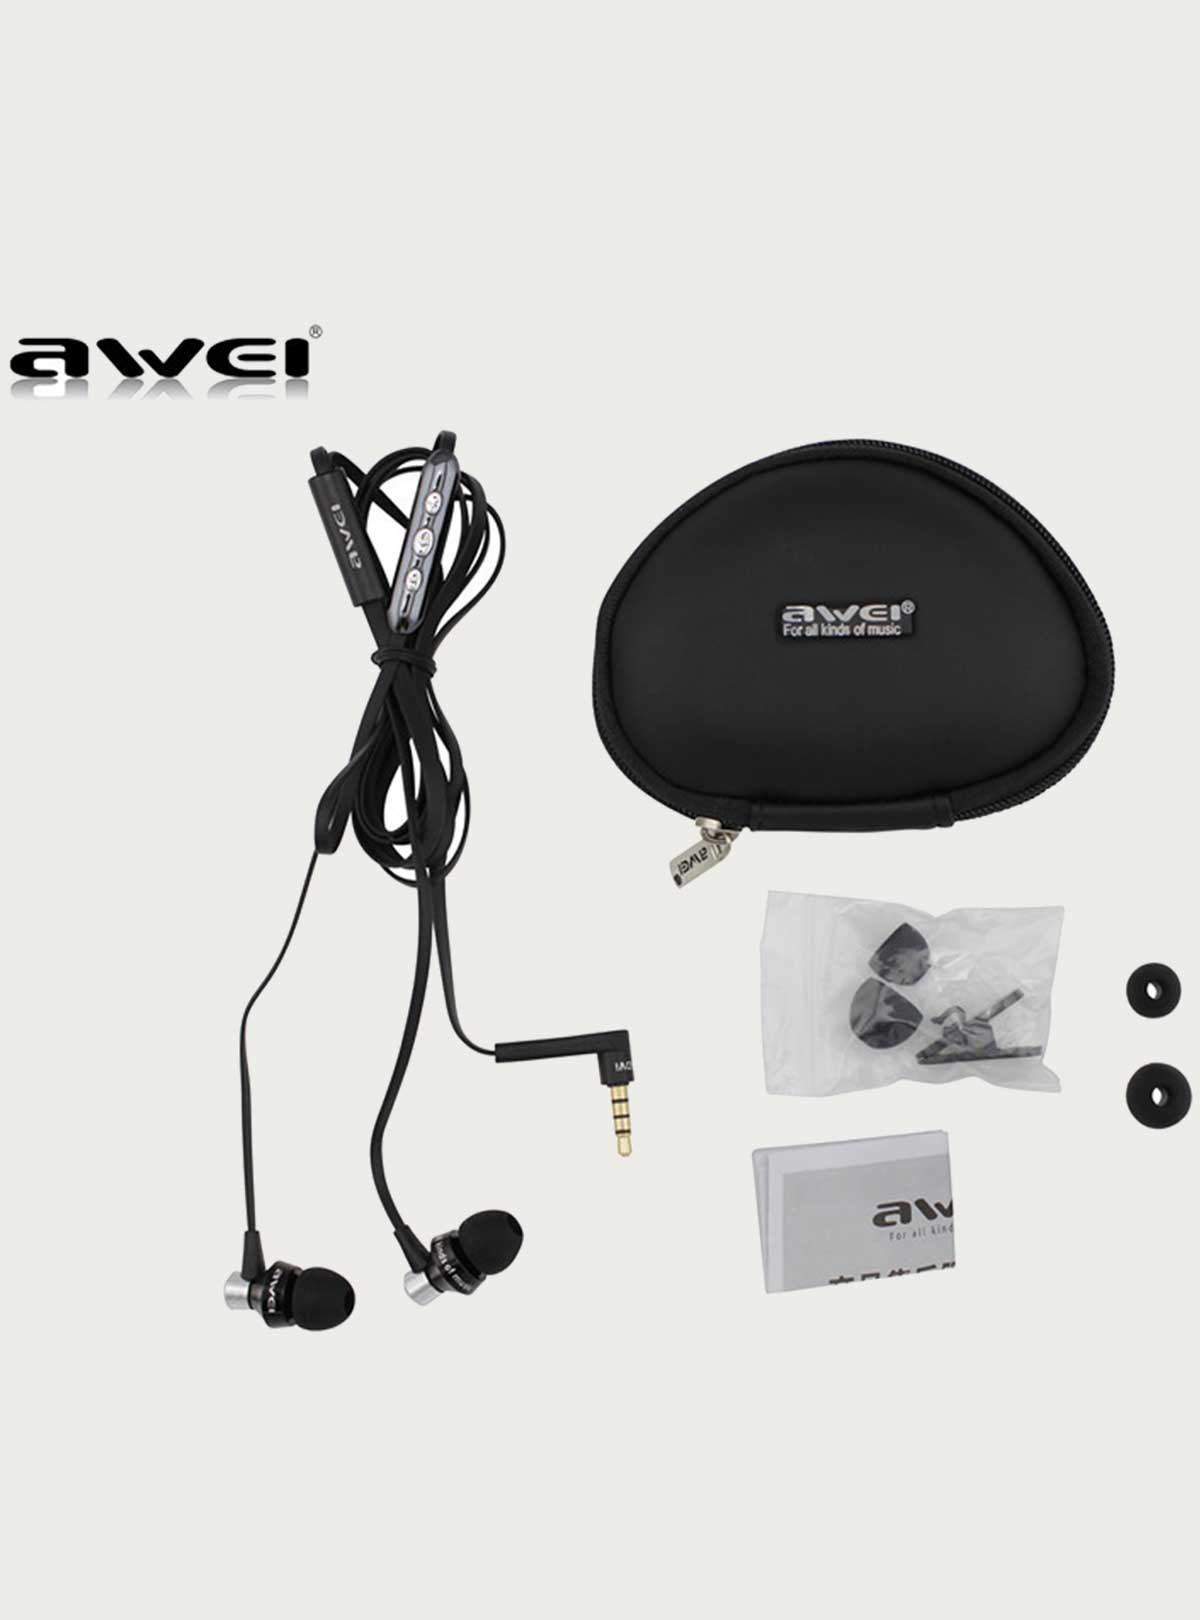 AWEI S950vi High Performance In-ear Stereo Earphones